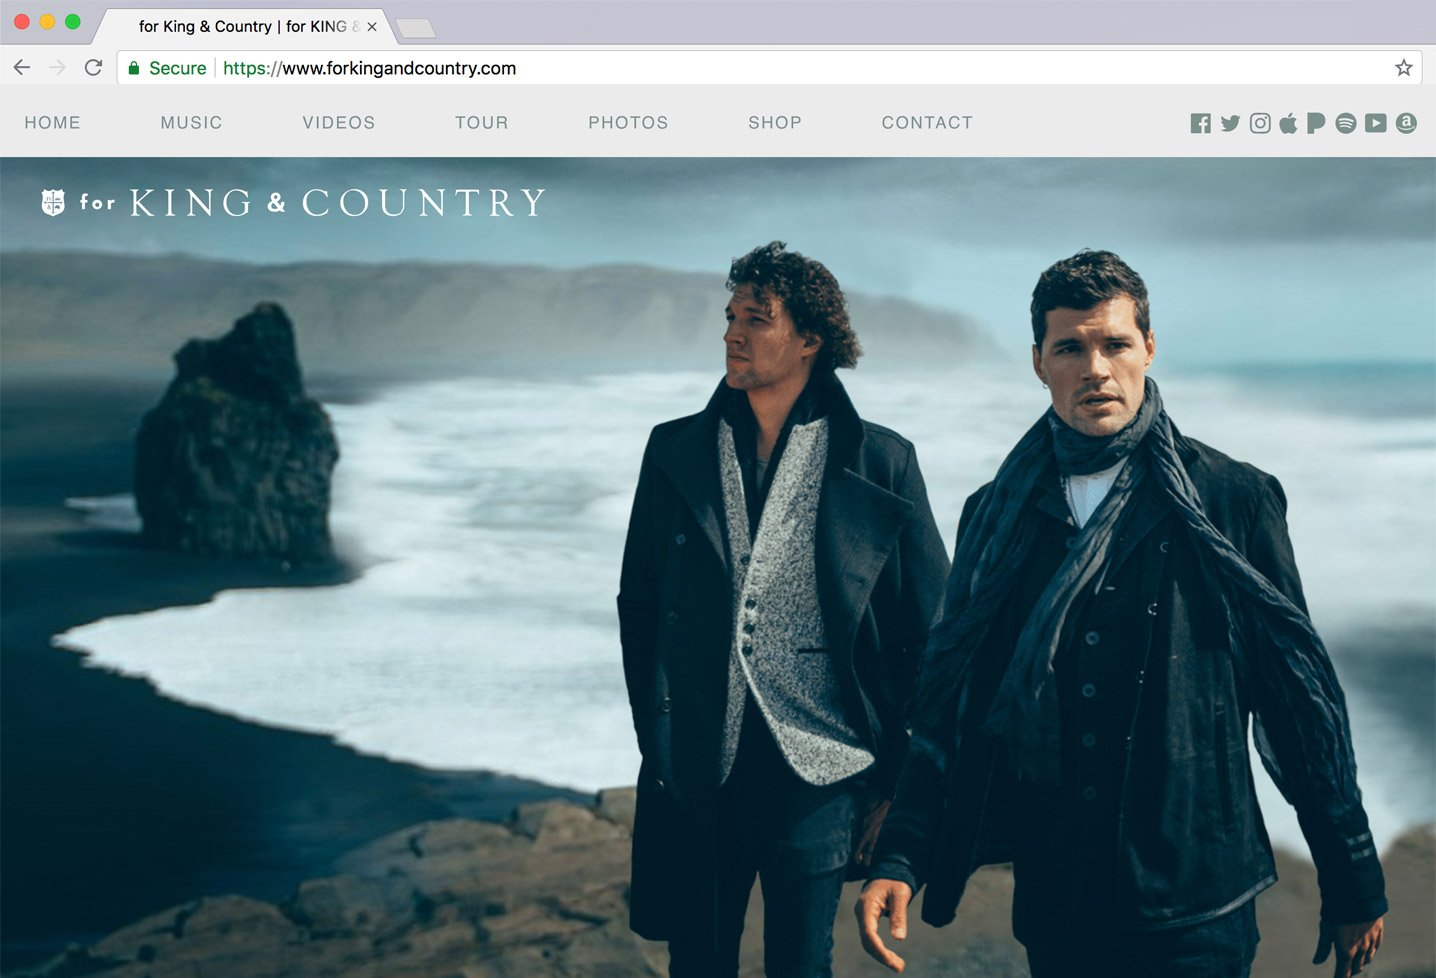 for KING & COUNTRY (2018)